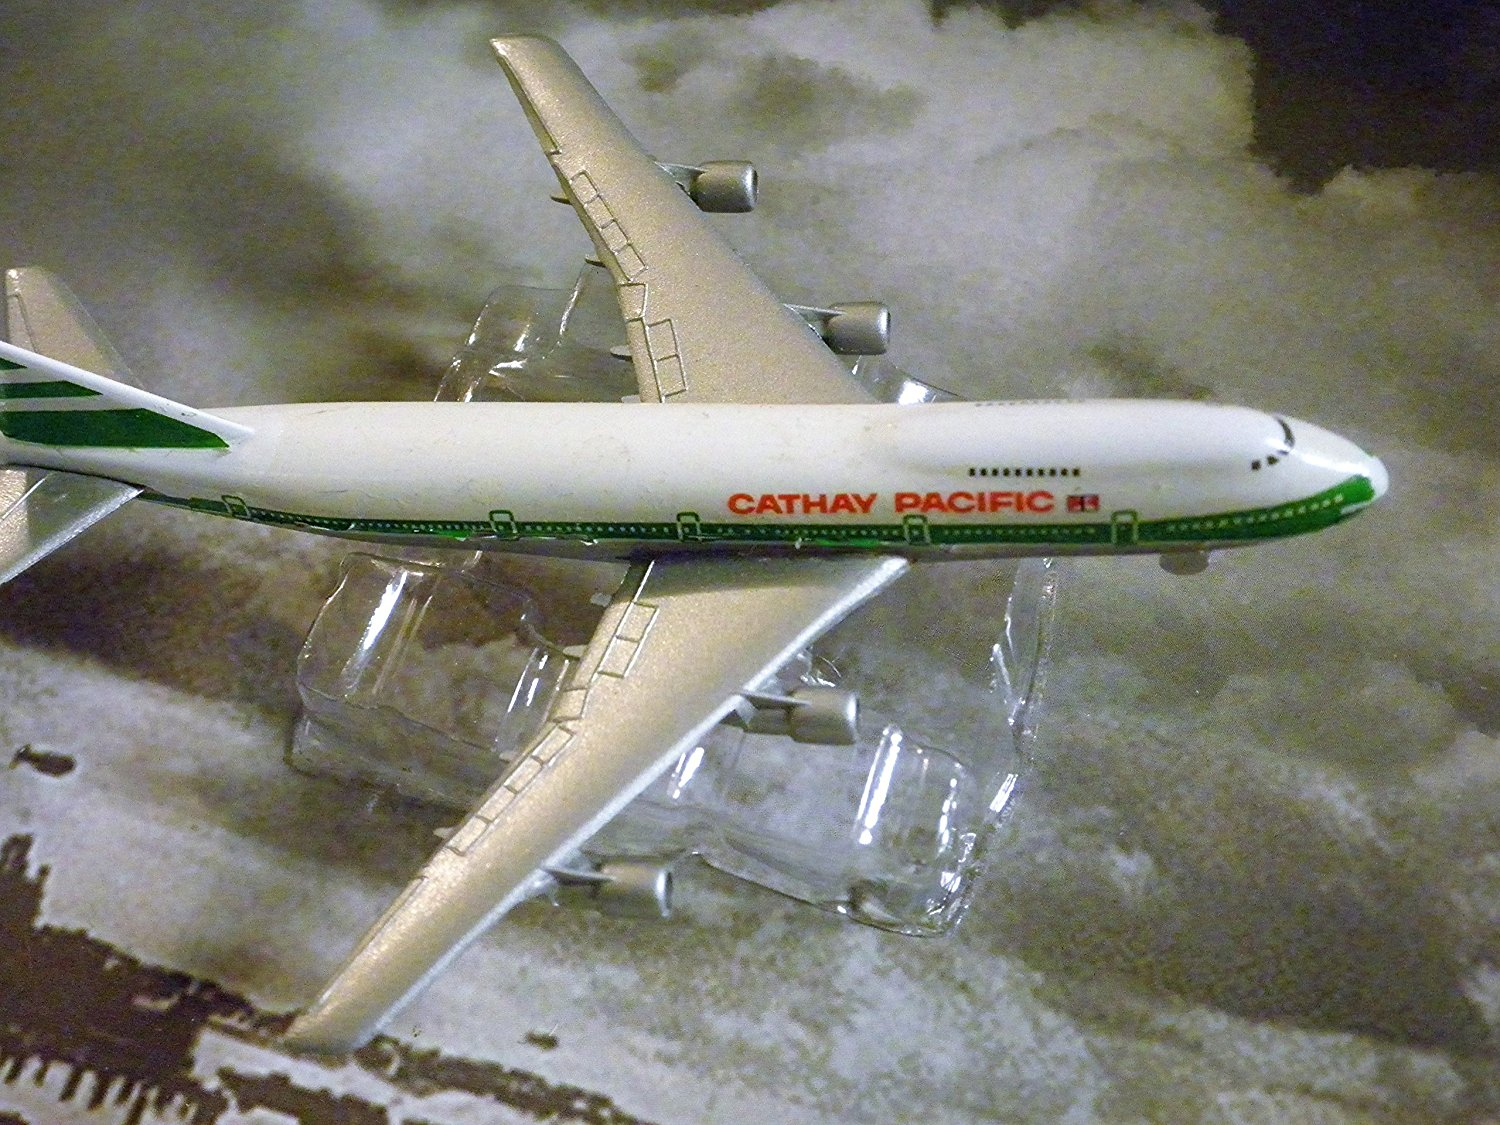 Cathay Pacific Hong Kong Airline 747-200 Jet Plane 1:600 Scale Die-cast Plane Made in Germany by Schabak